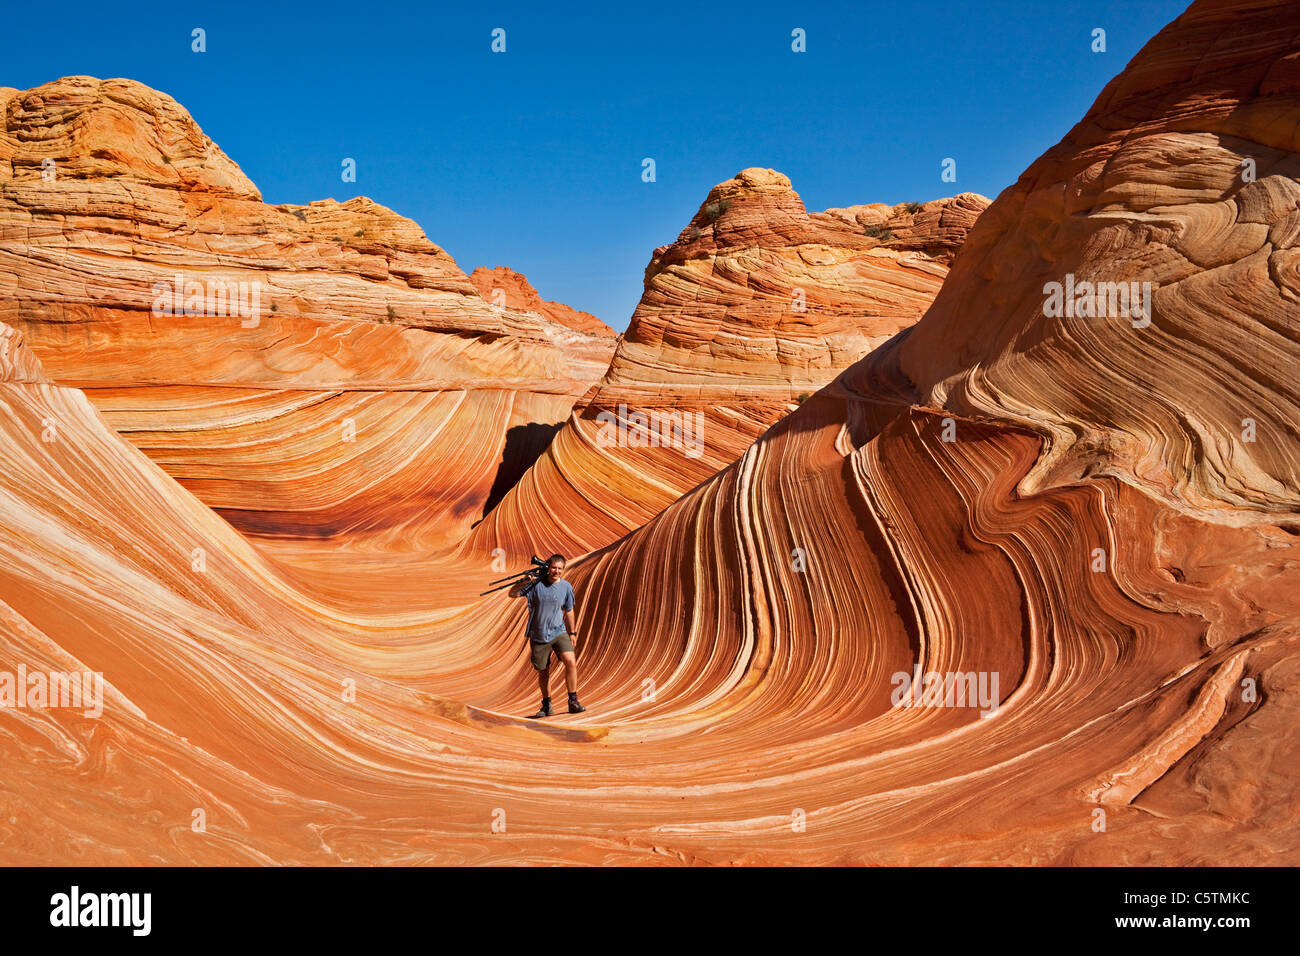 USA, Utah, North Coyote Buttes, Cliffs National Monument - Stock Image